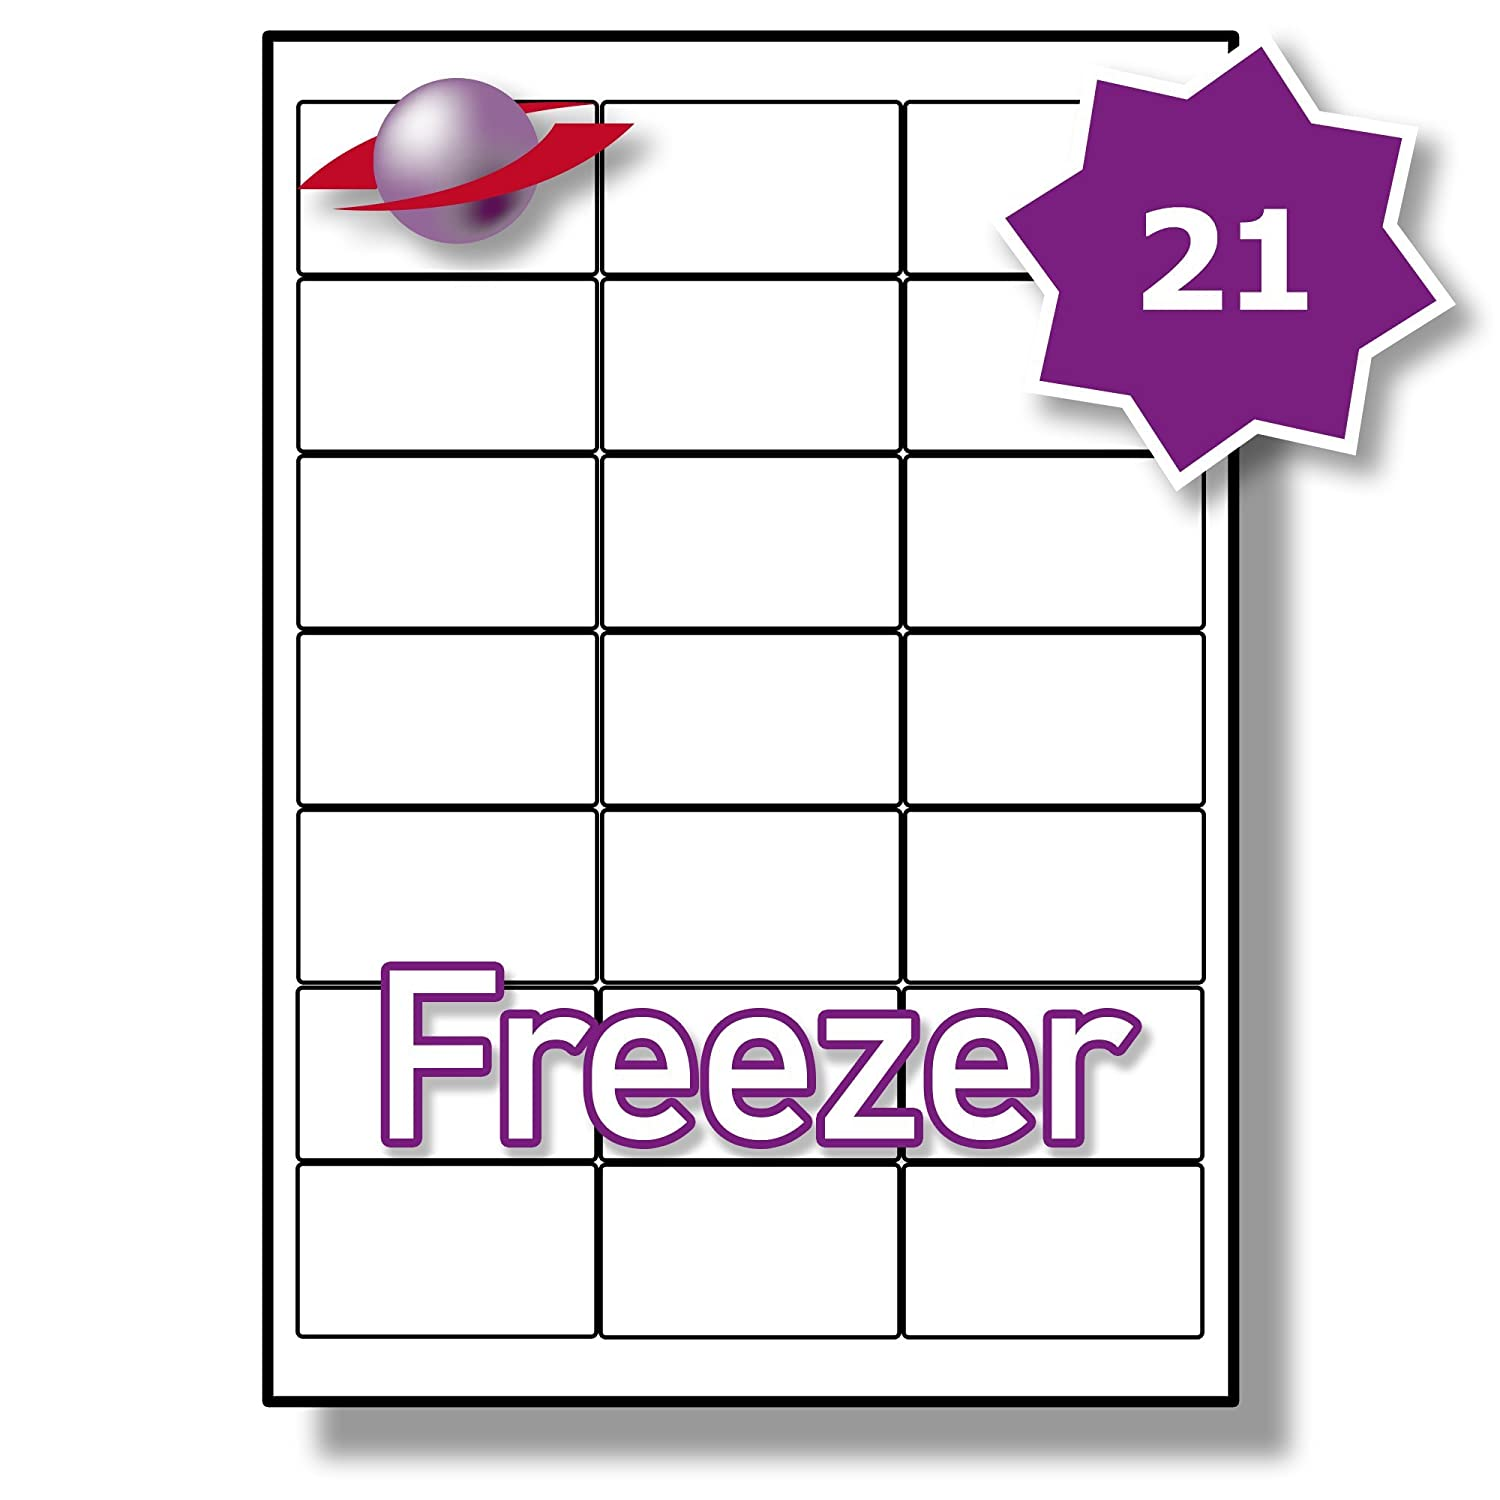 photograph relating to Printable Freezer Labels referred to as 21 For every Webpage/Sheet, 5 Sheets (105 Sticky FREEZER Labels), Label Planet® White Blank Matt Self-Adhesive A4 Deep Freeze Stickers, For Frozen